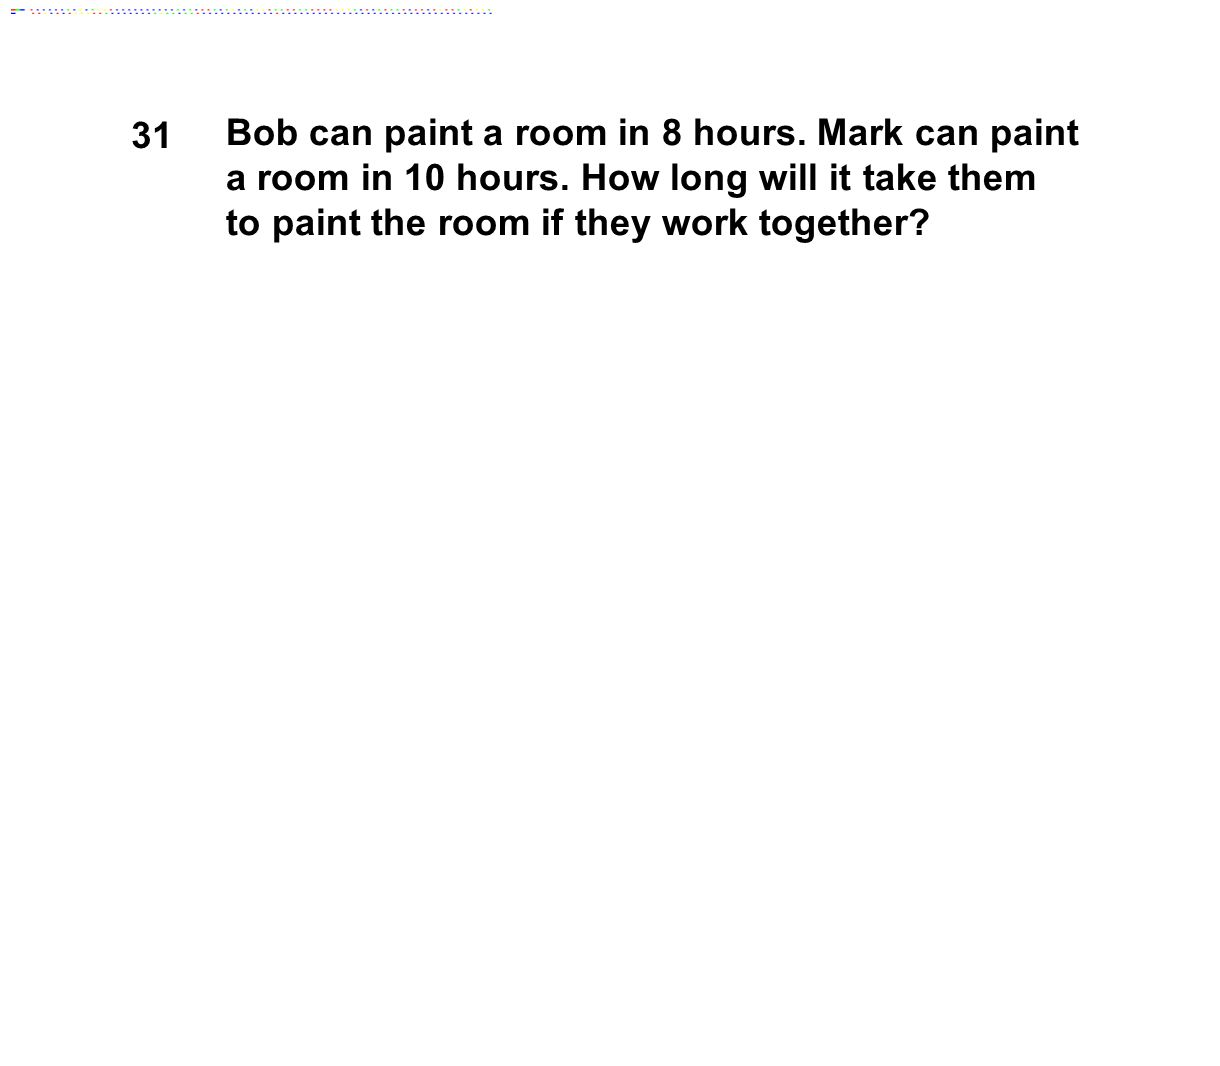 31 Bob can paint a room in 8 hours. Mark can paint a room in 10 hours. How long will it take them to paint the room if they work together?